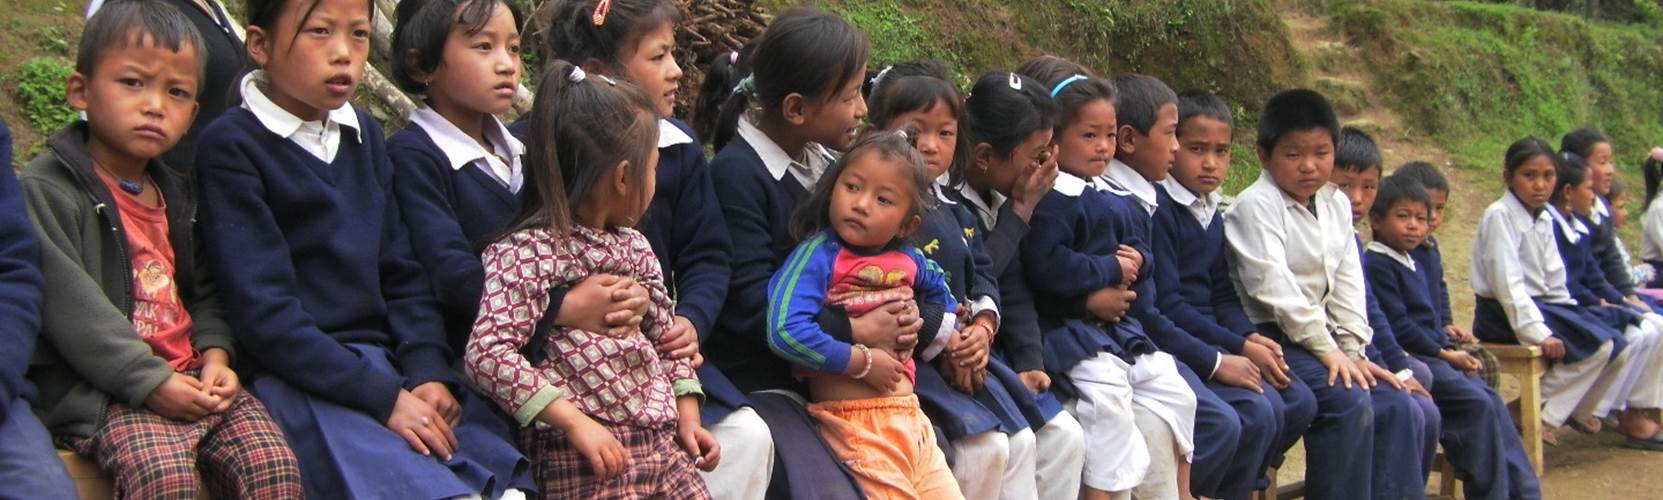 School Expedition to Nepal